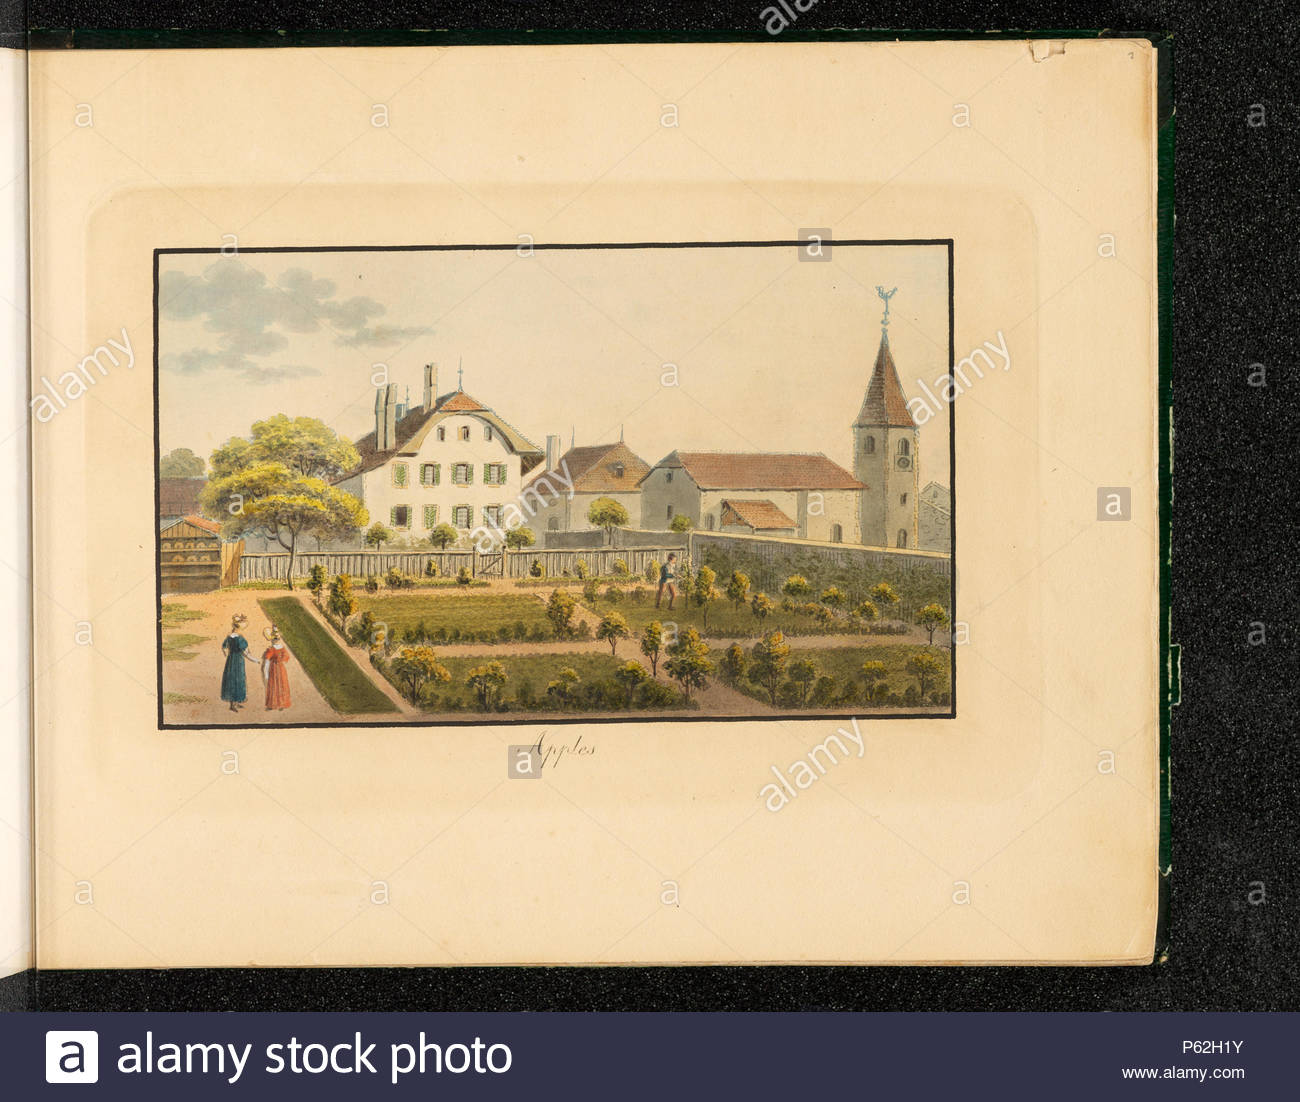 na apples cures du canton de vaud recto en bas gauche presque illisible s weibel 1829 en bas au milieu apples en haut droite au crayon 1 apples vue partielle cure glise jardin 1829th century weibel jakob samuel 290 ch nb apples collection gugelmann gs guge 201 5 P62H1Y